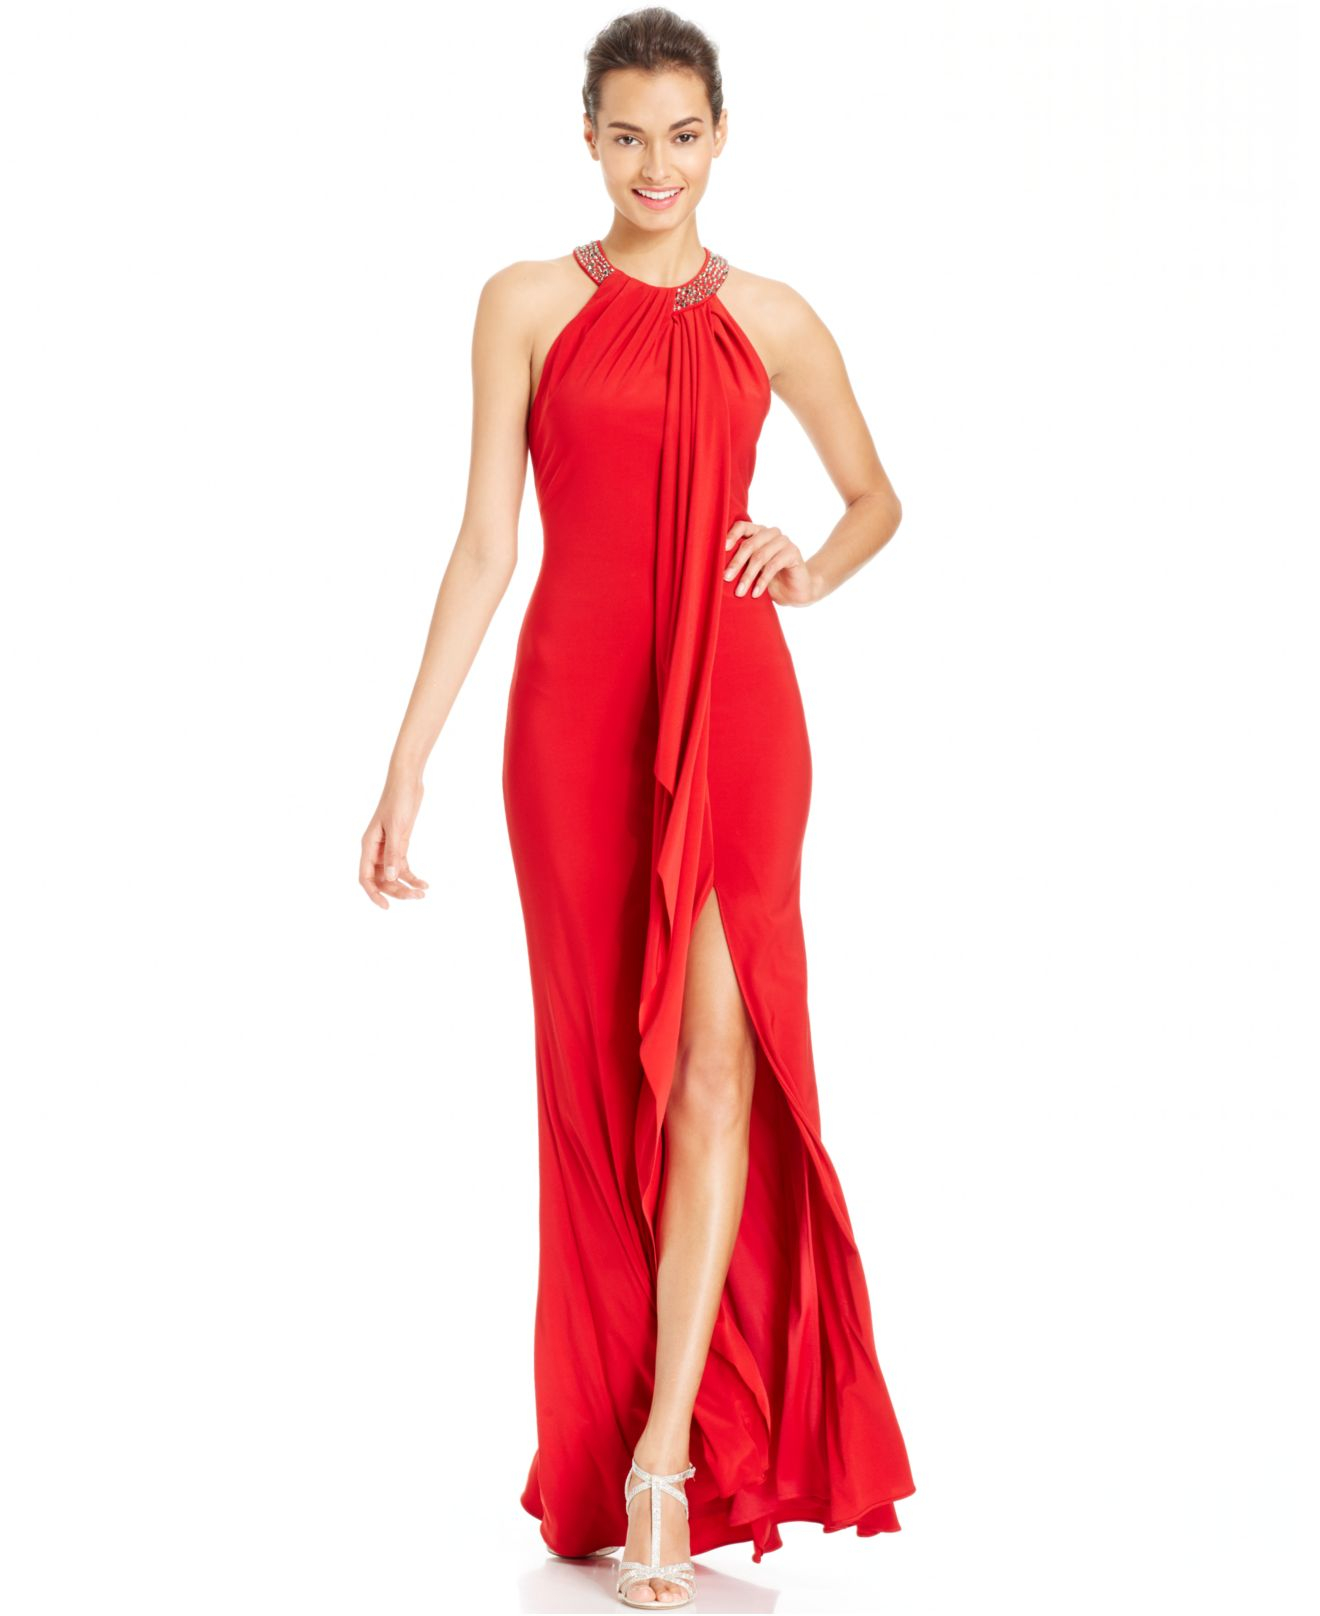 red halter gown - Yahoo Canada Image Search Results